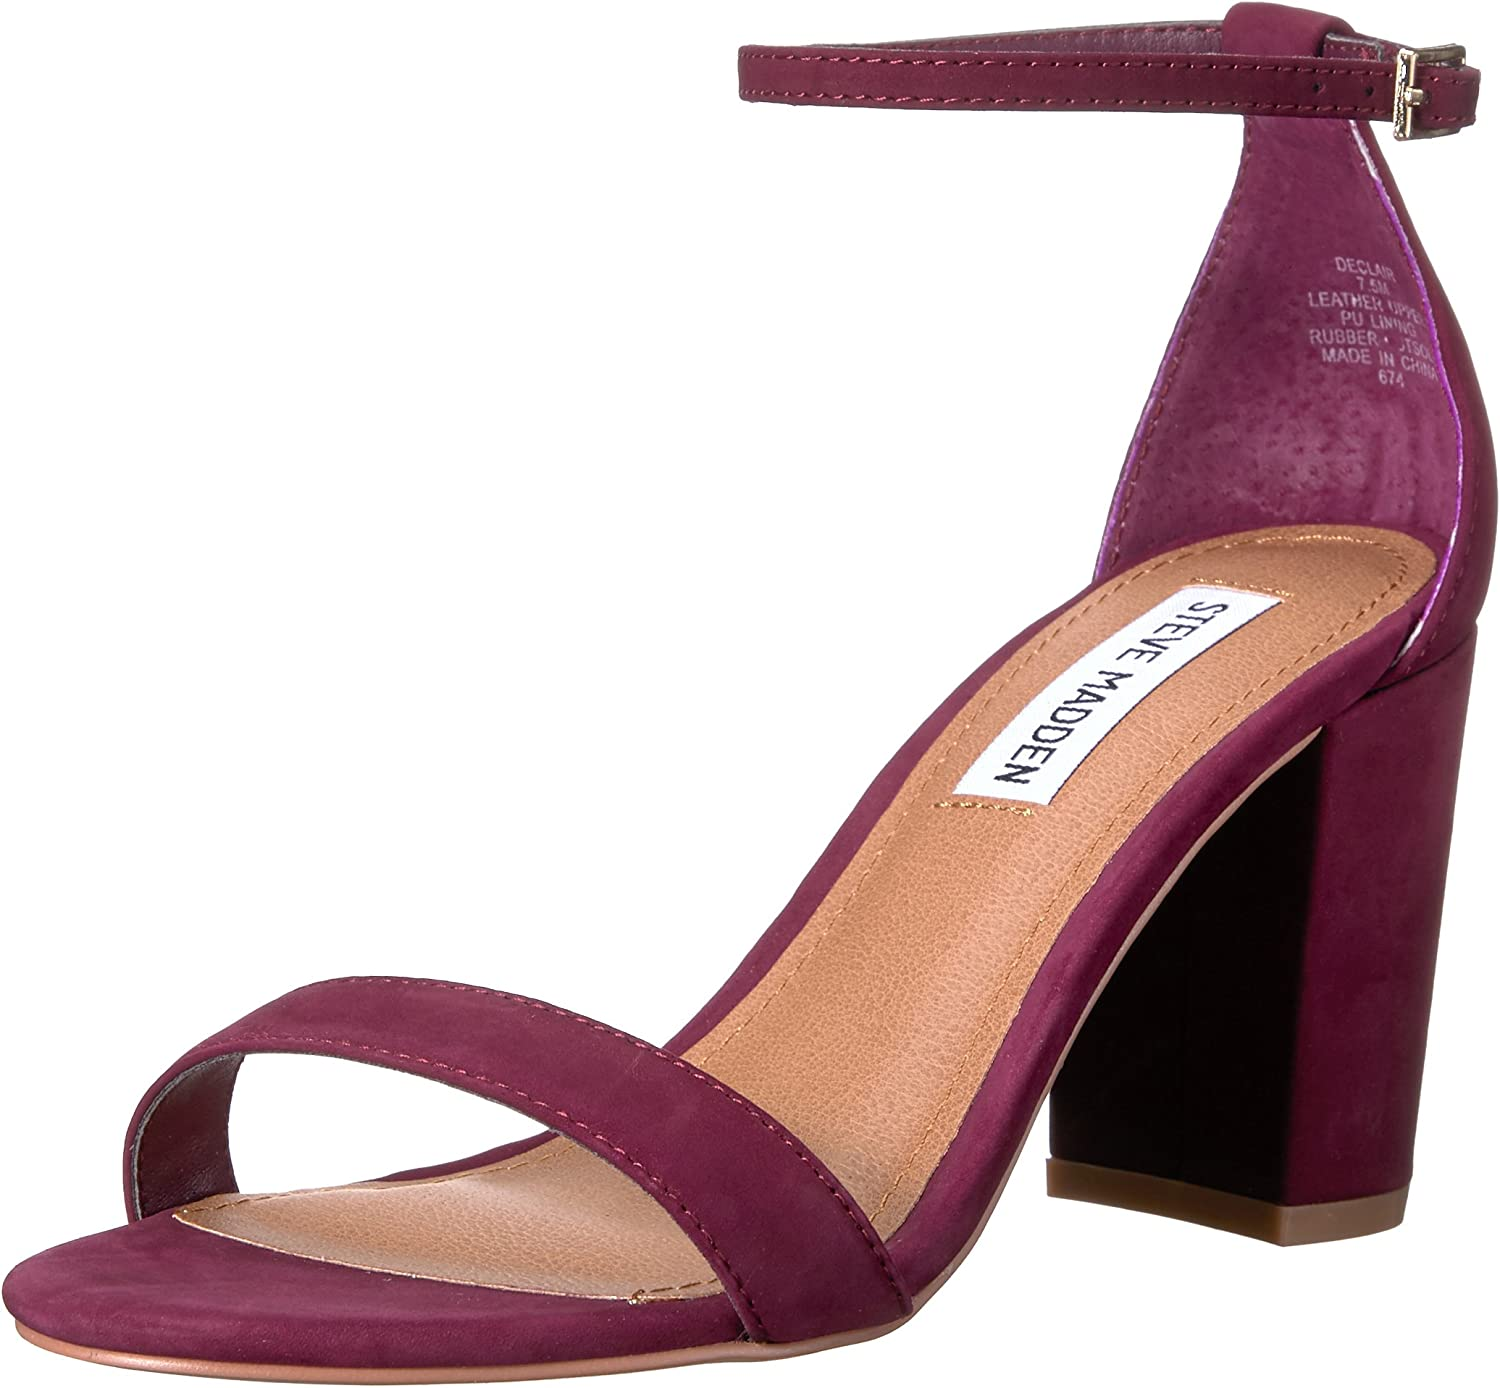 Steve Madden Womens Declair Dress Sandal